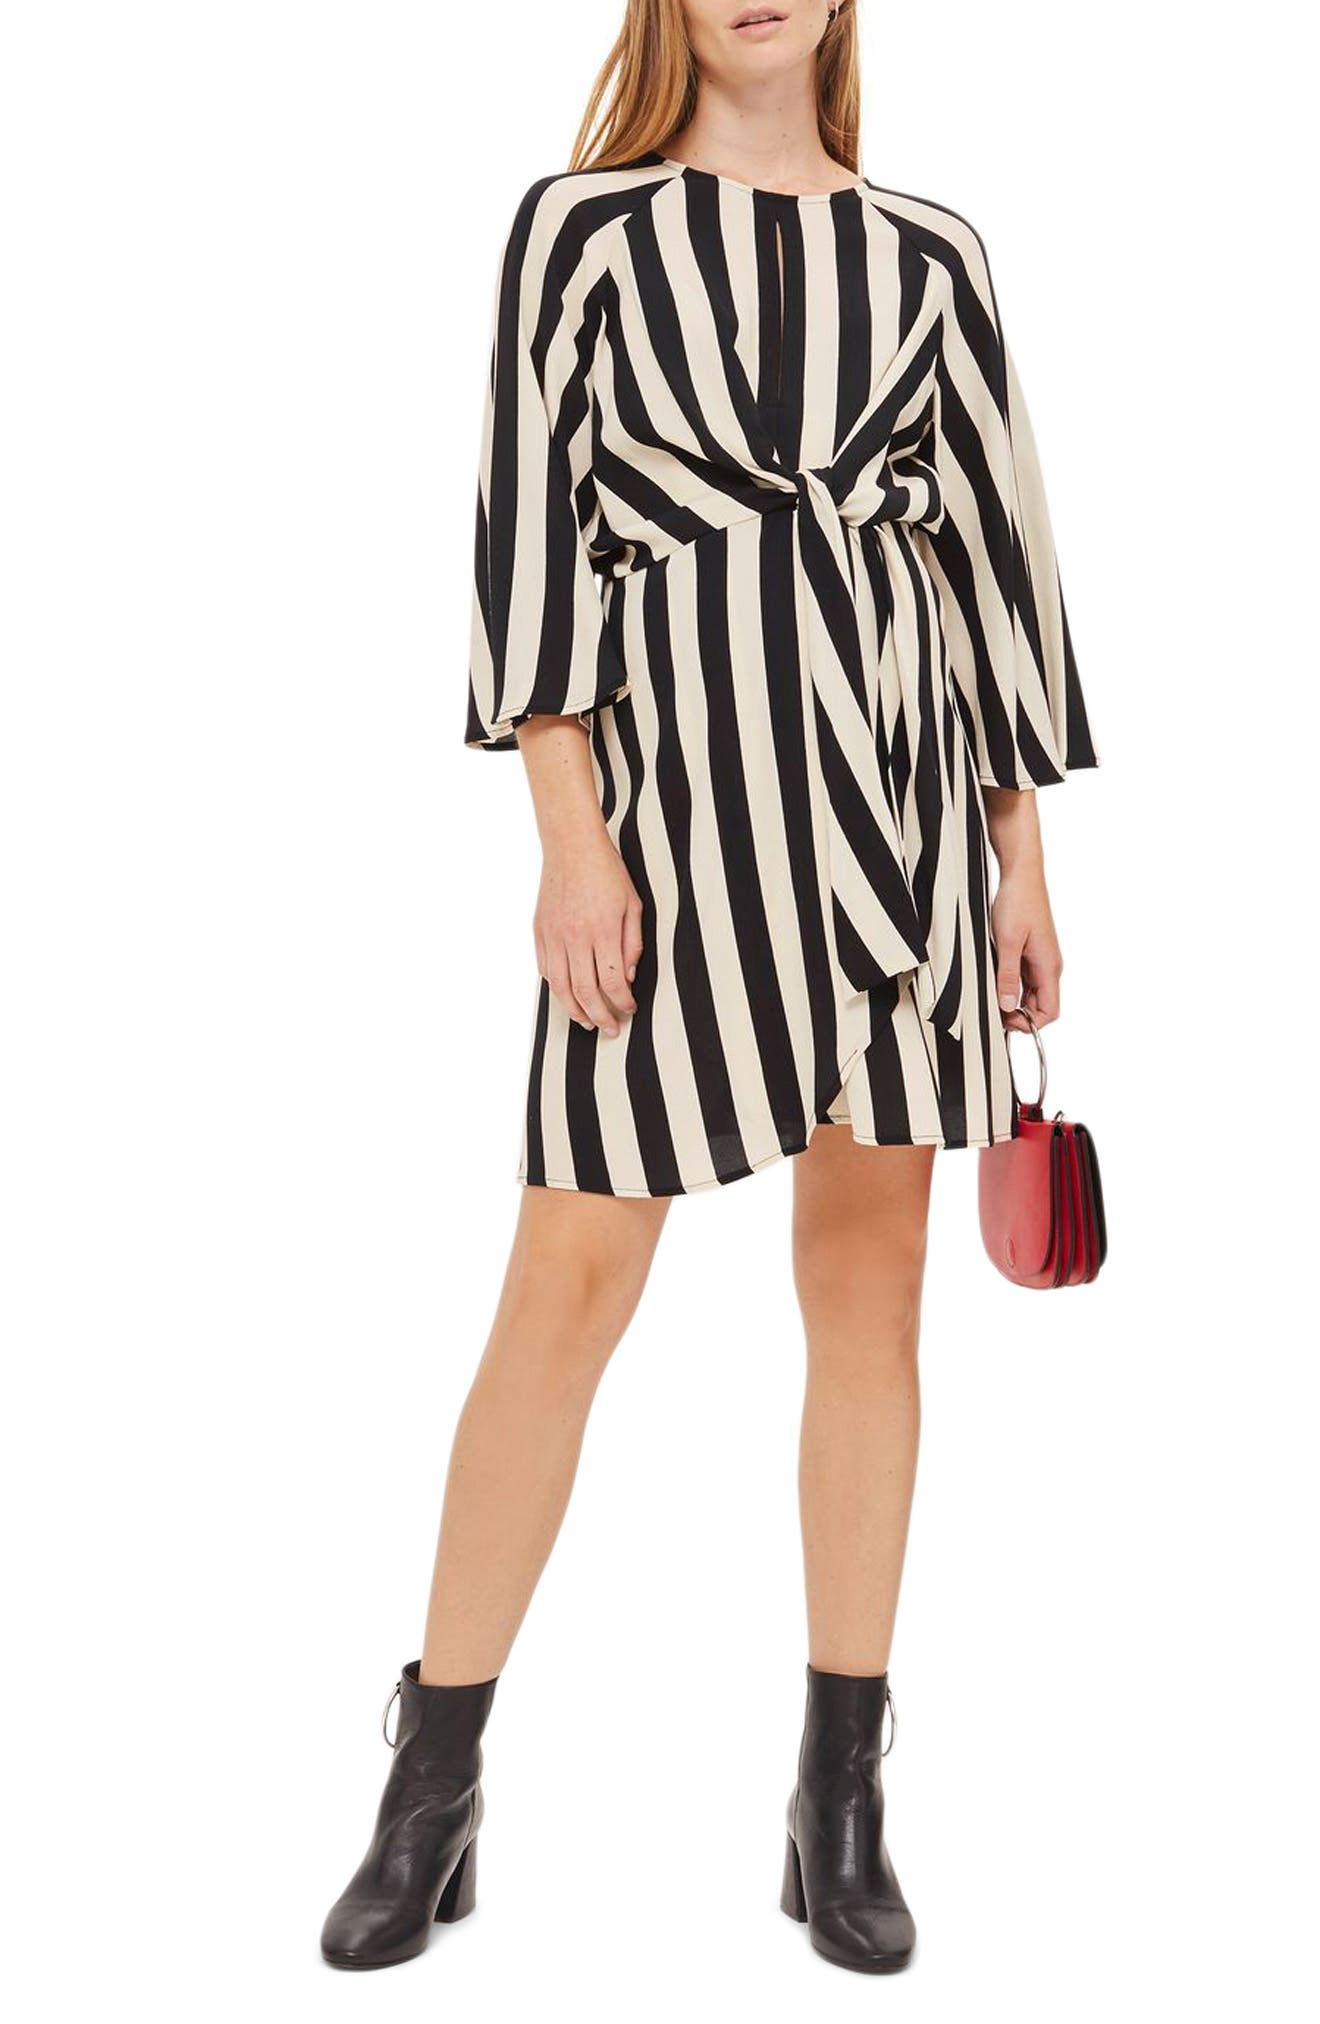 Main Image - Topshop Humbug Stripe Knot Maternity Dress